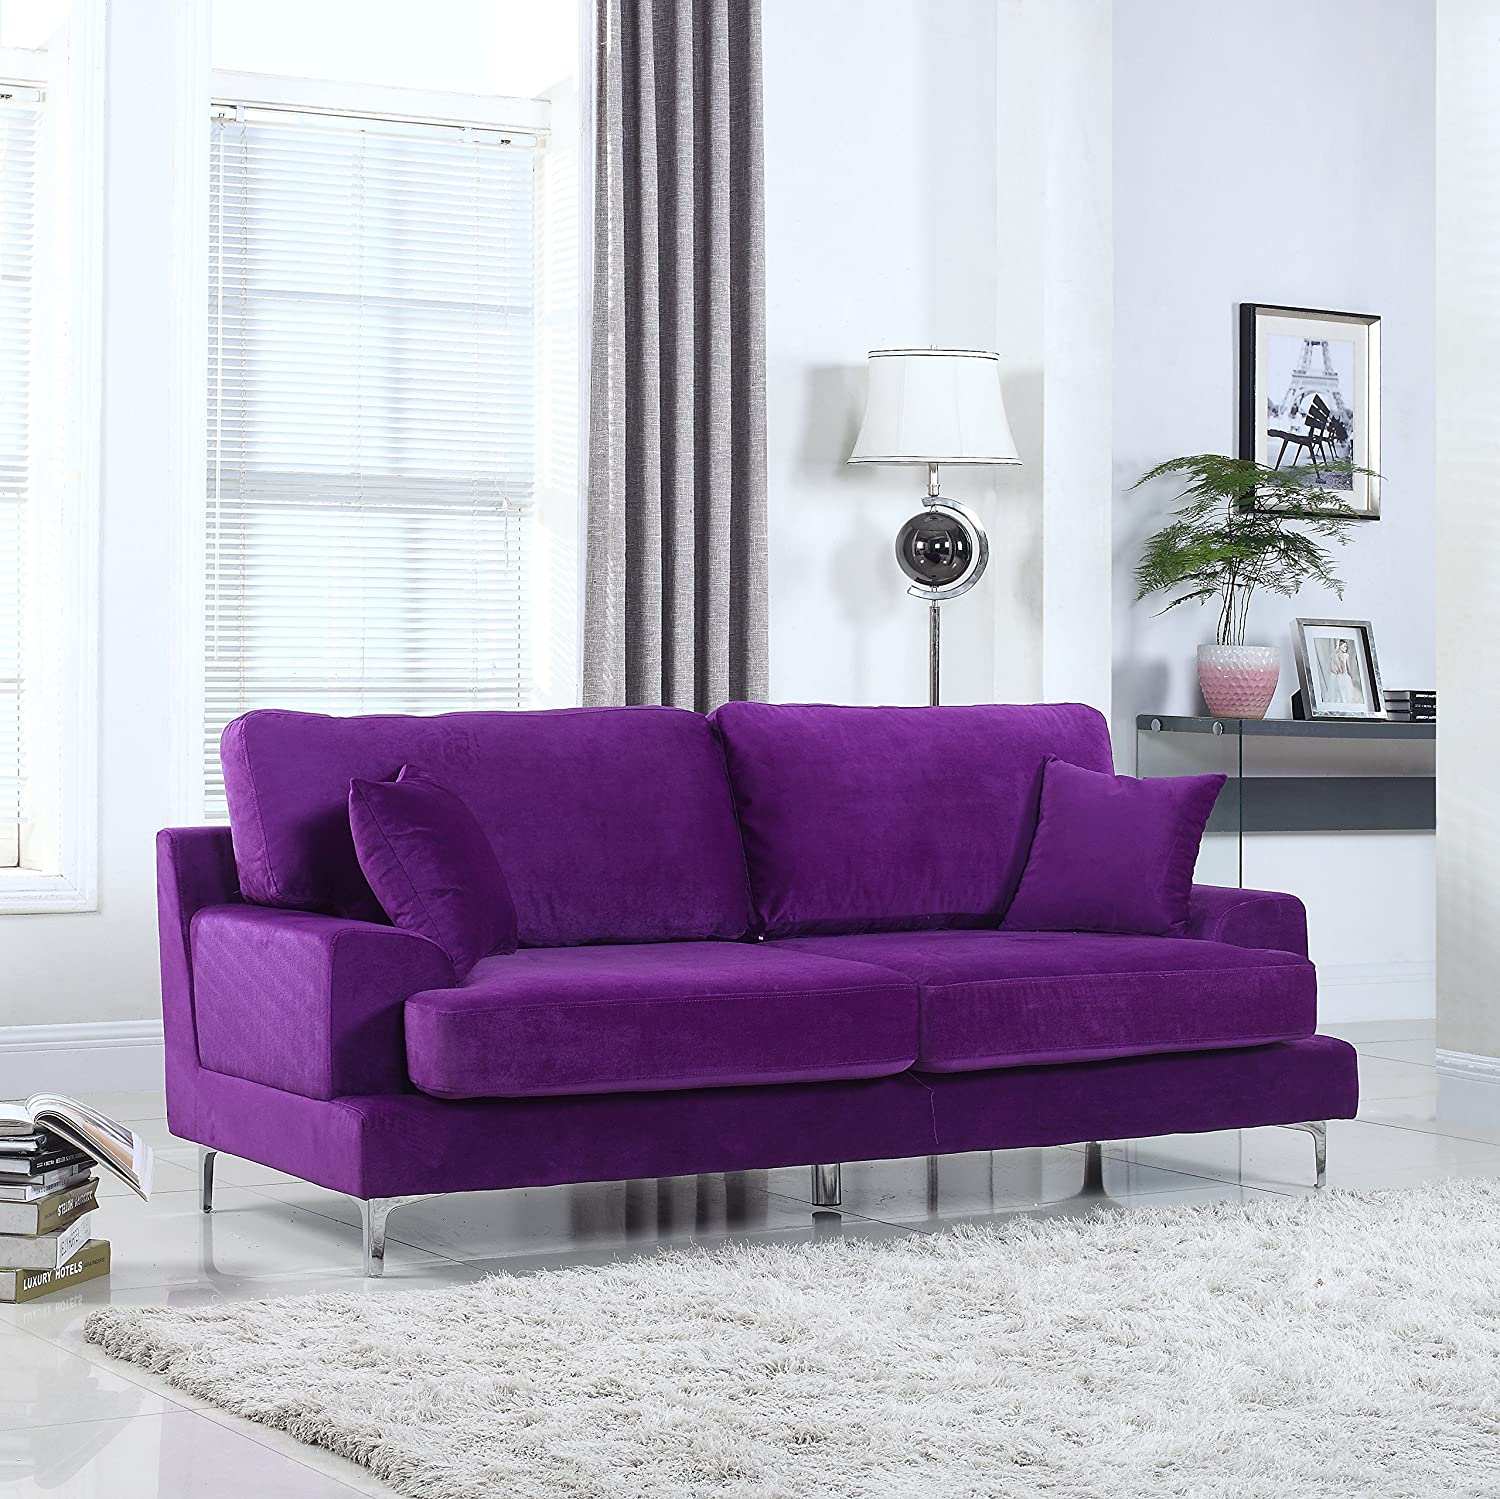 Amazon Ultra Modern Plush Velvet Living Room Sofa Purple